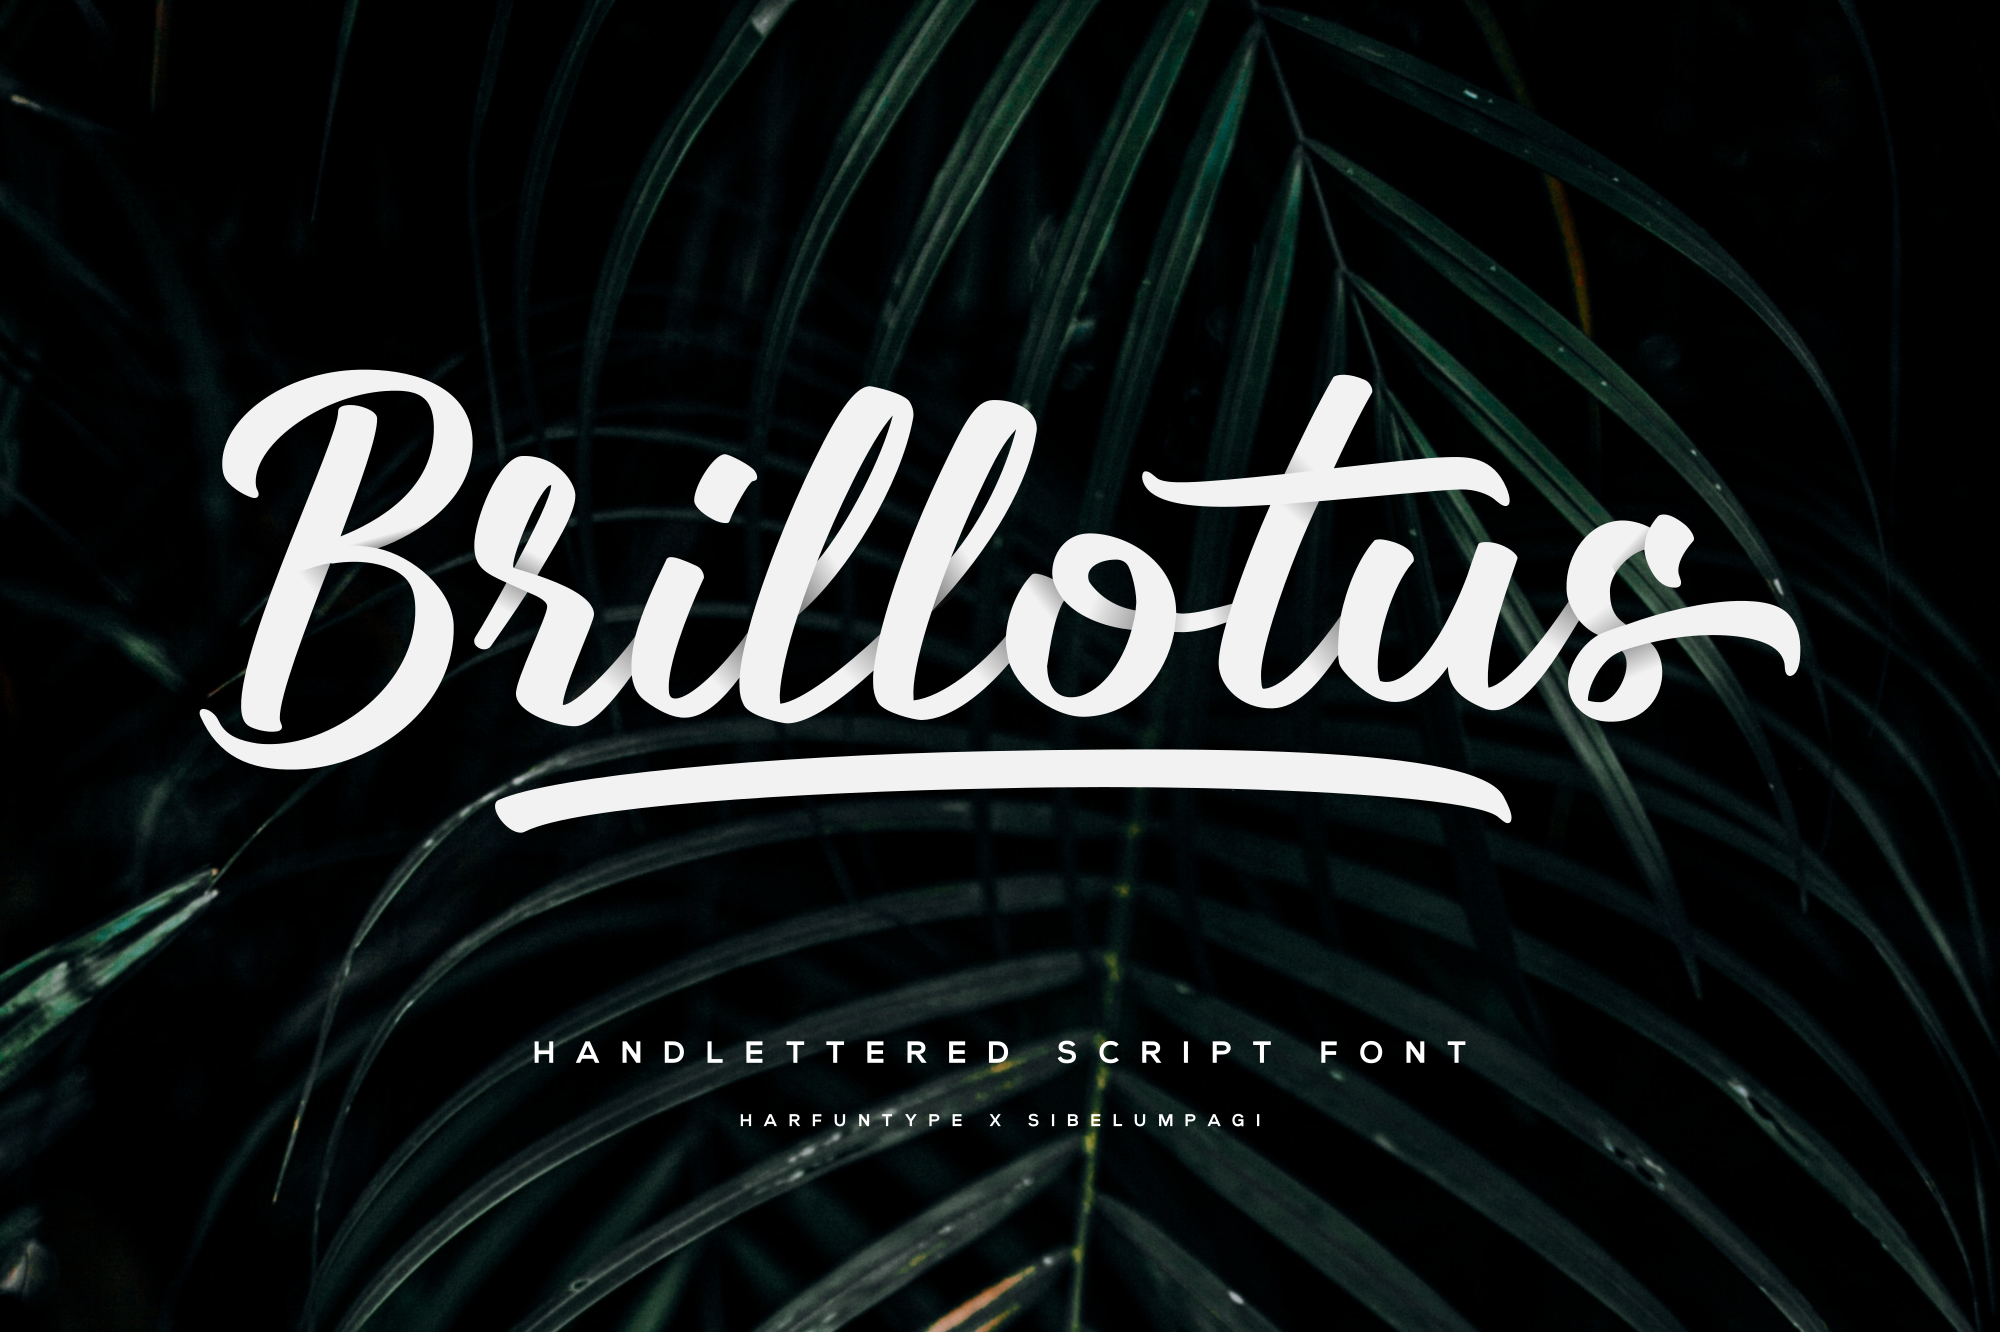 Brillotus - Hand lettered Font example image 1